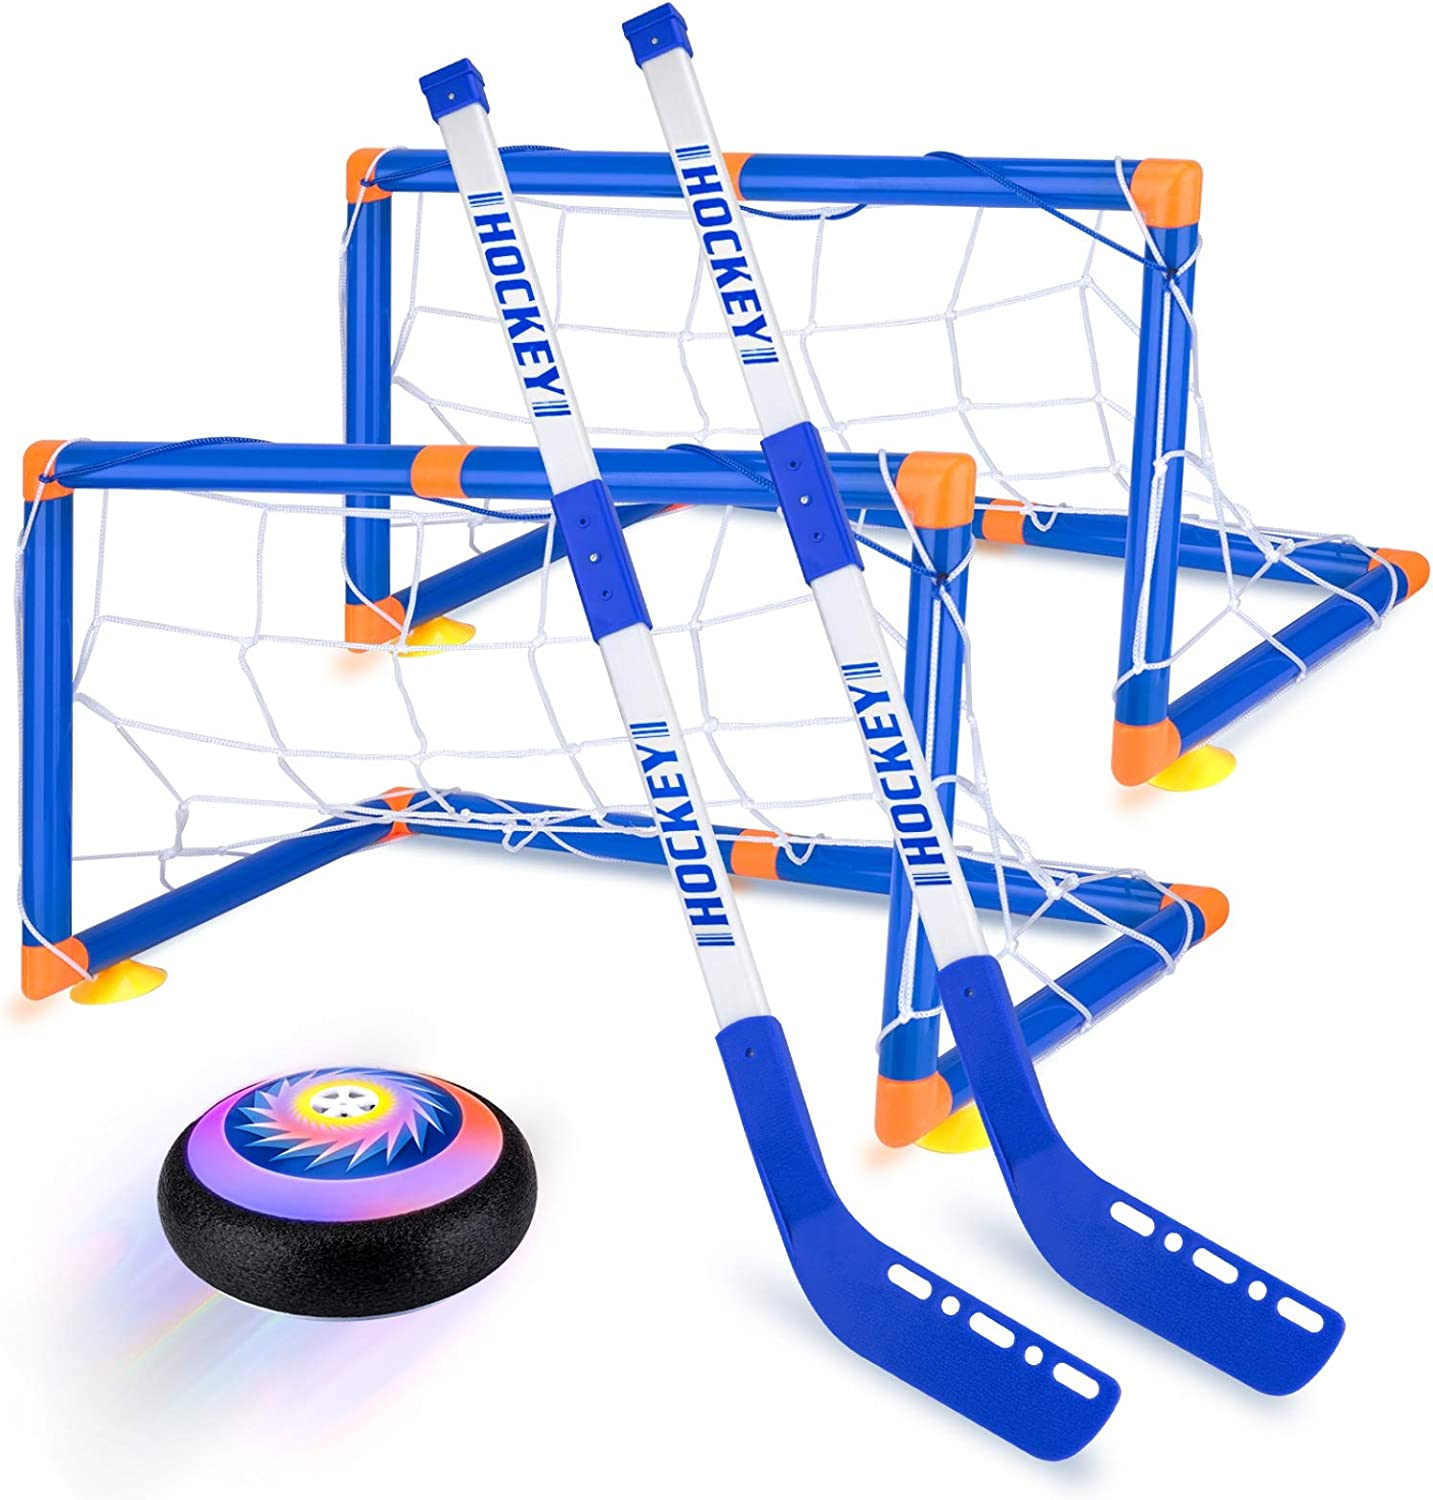 Hover Hockey Set Boys Toys, Hovering Hockey Game with 2 Goals and Led Lights, Indoor Air Soccer Hover Ball Gifts for 3 4 5 6 7 8 9 10 11 12 Year Old Kids: Toys & Games